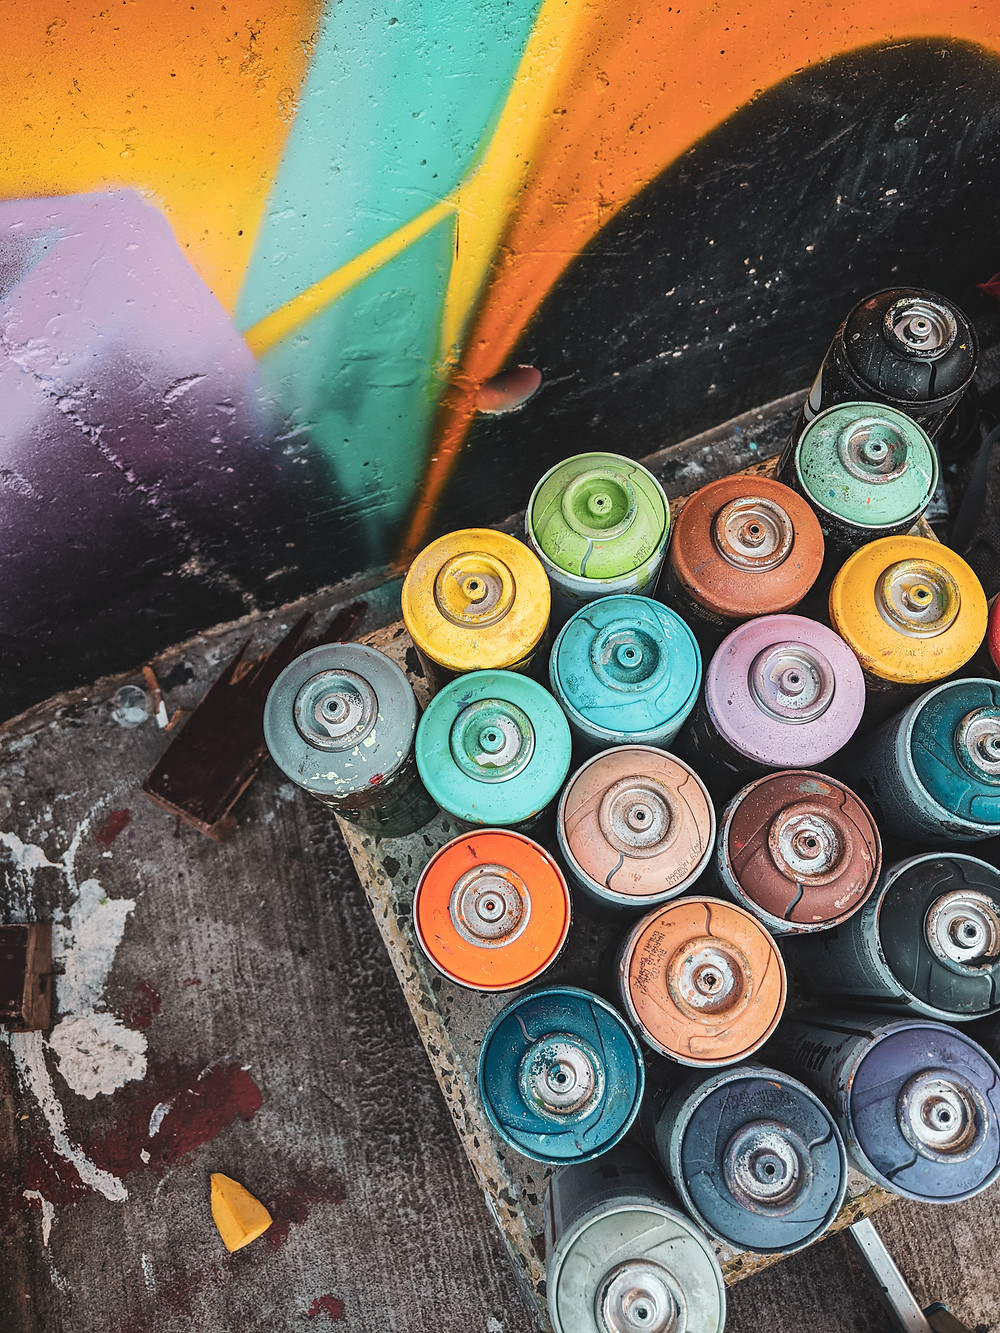 Spray paint cans next to a graffiti mural in Comuna 13 in Medellín, Colombia.